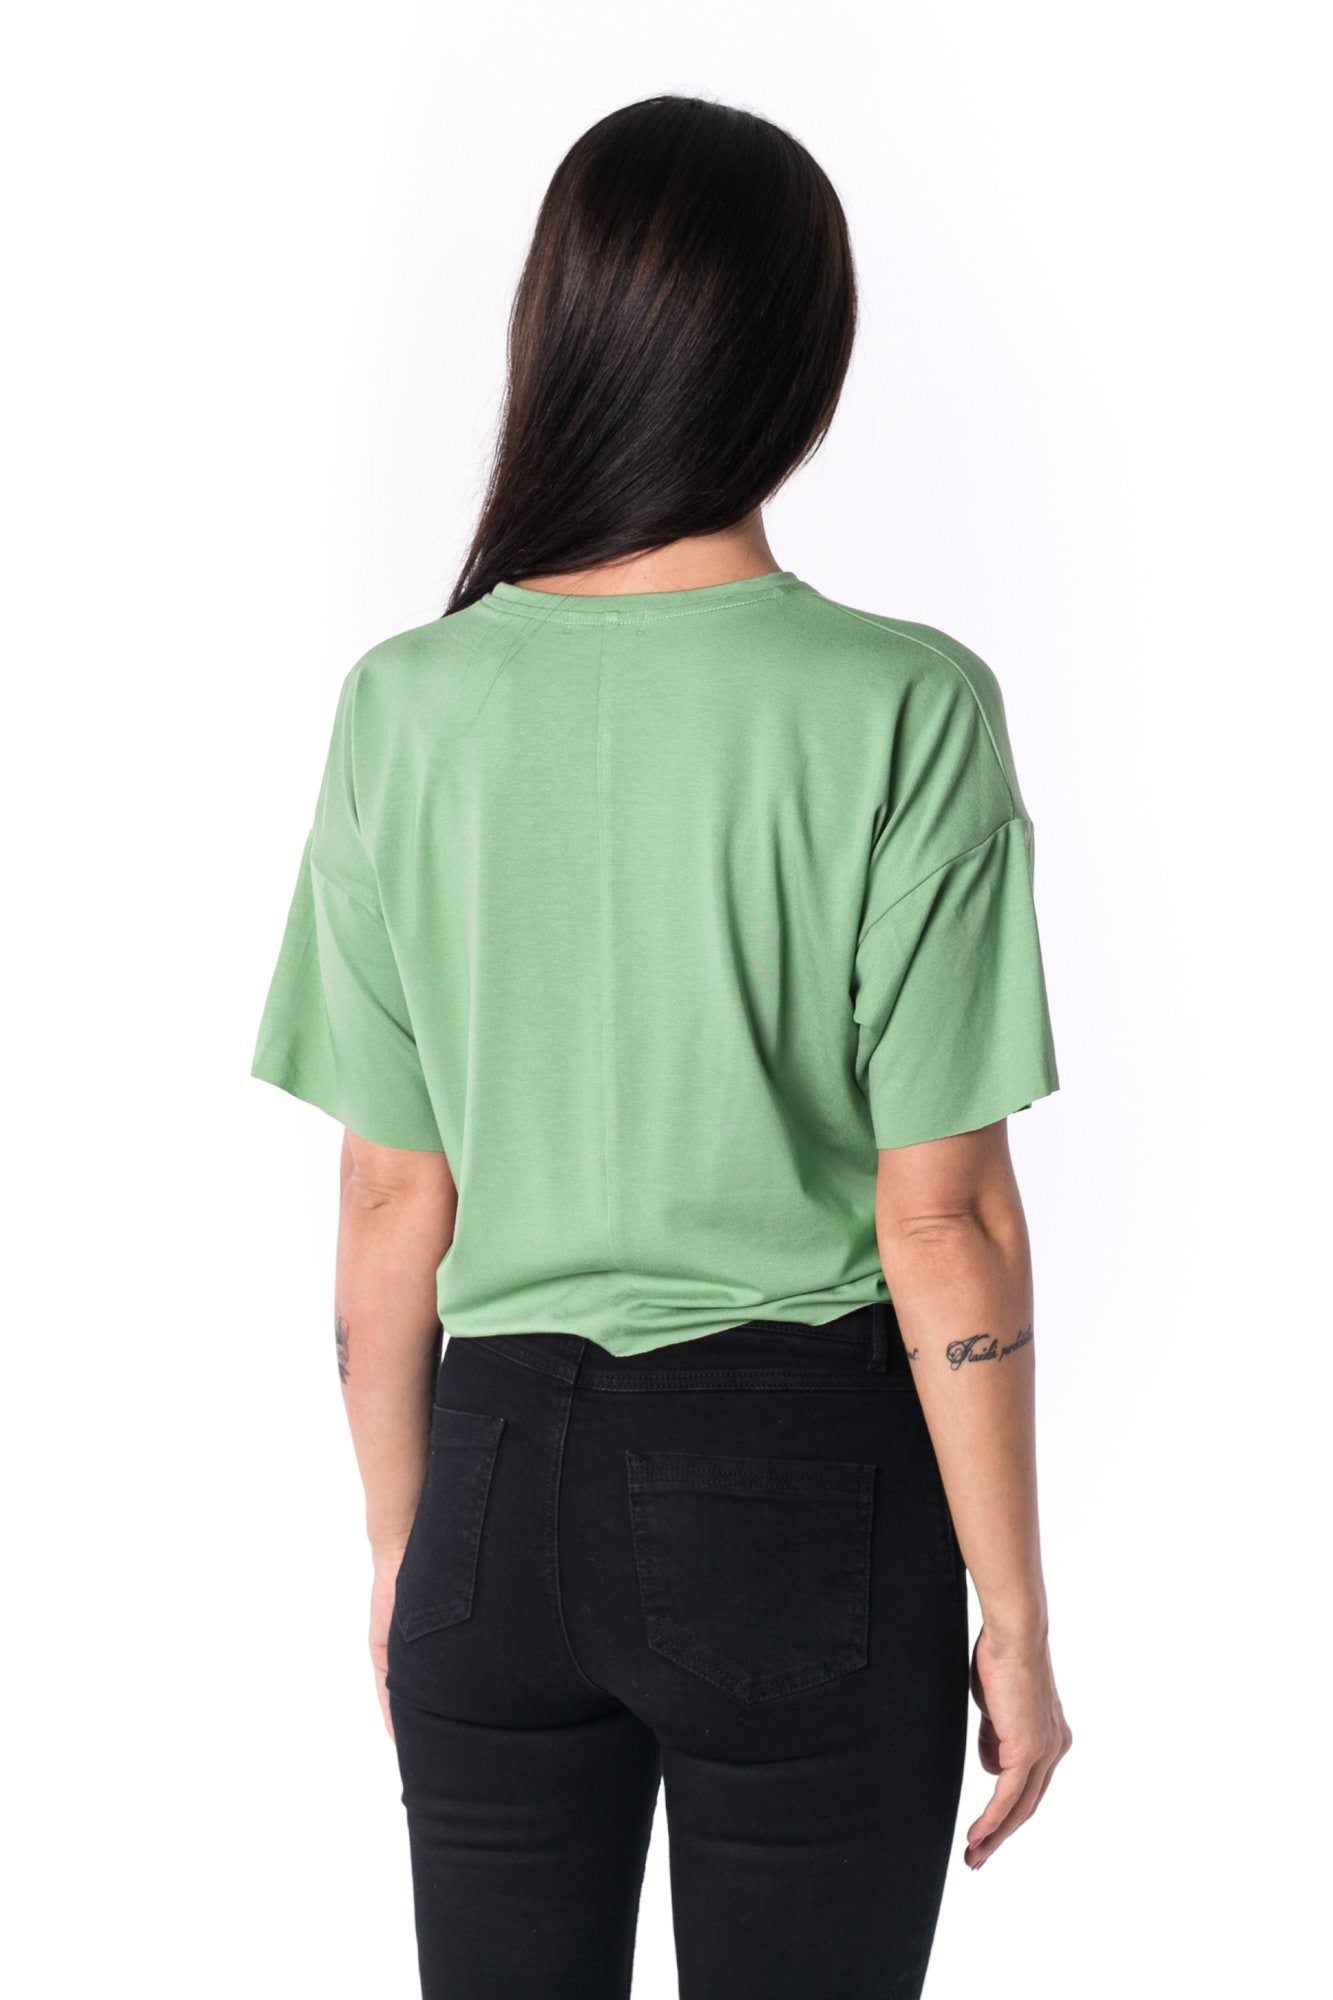 TheG Woman Panelled Oversize Crop Tee 17 // mentol